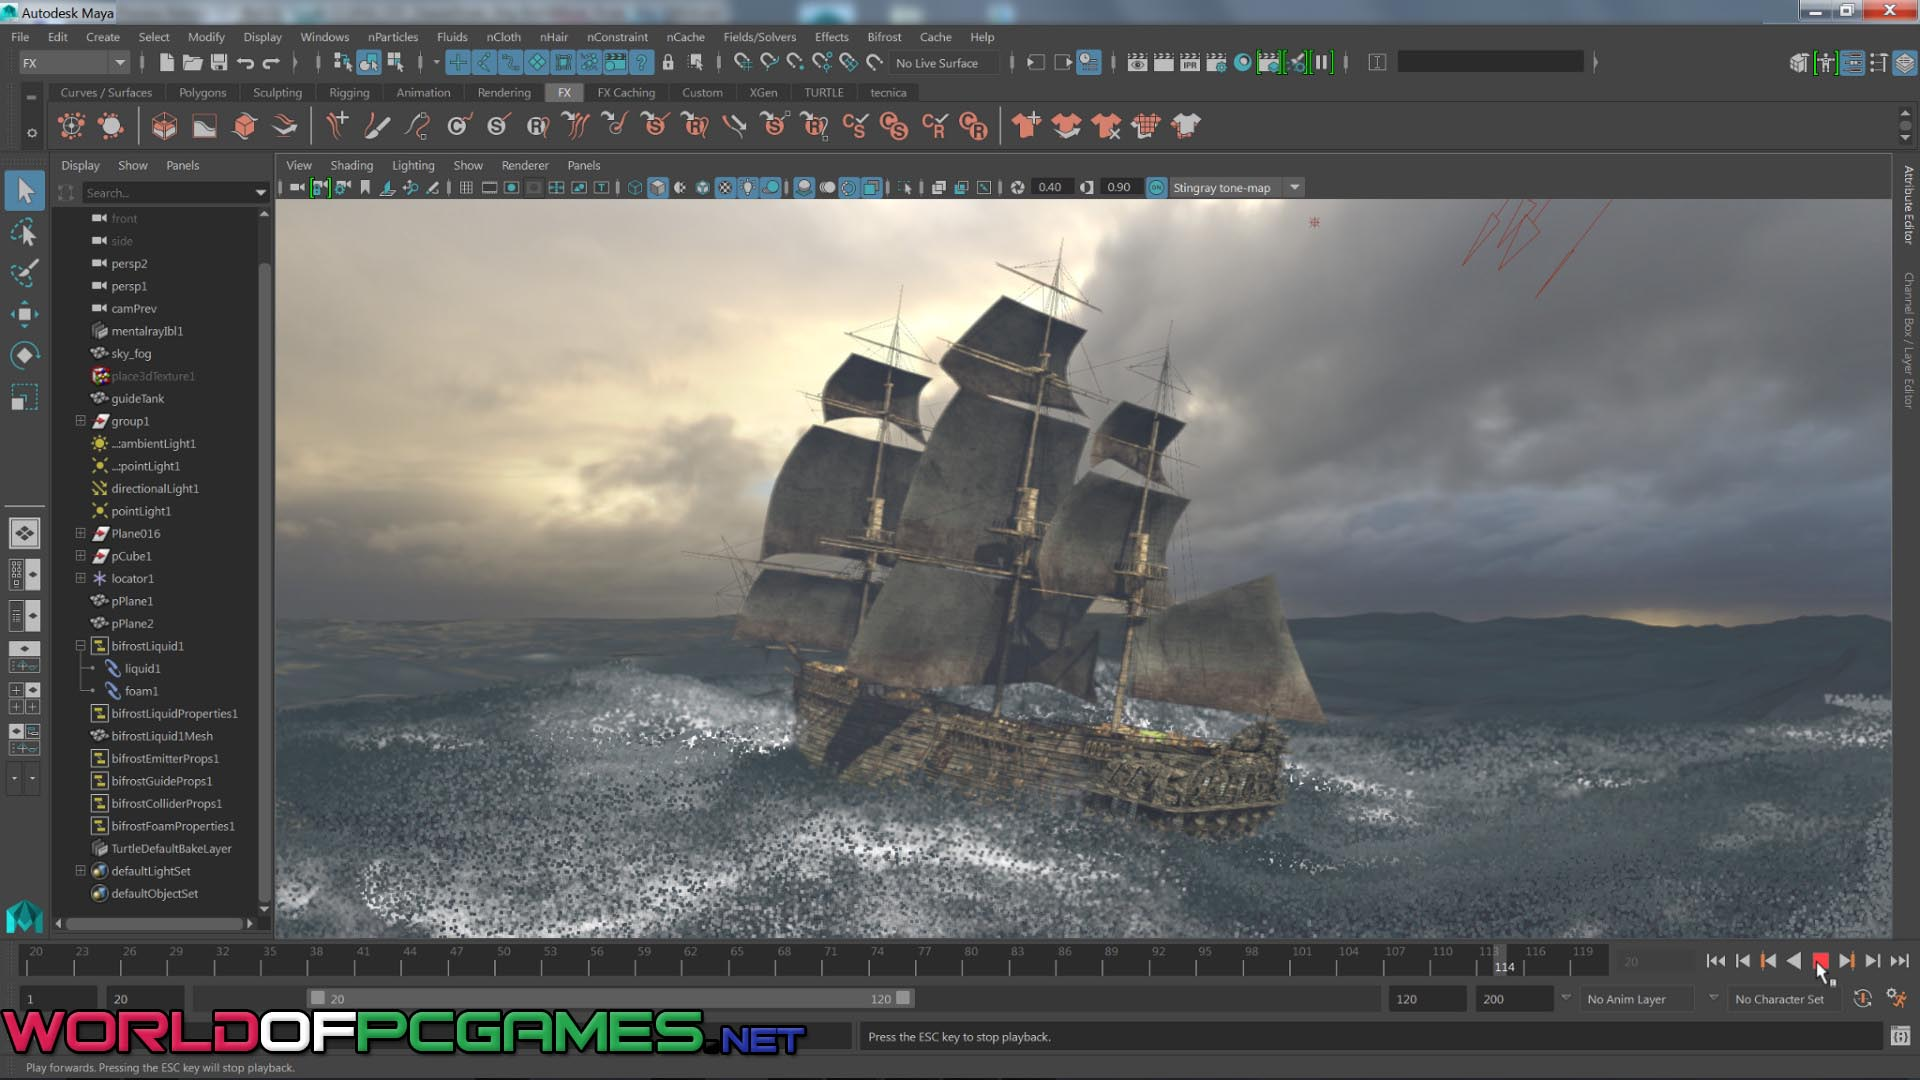 Autodesk Maya Game 2018 Download Free